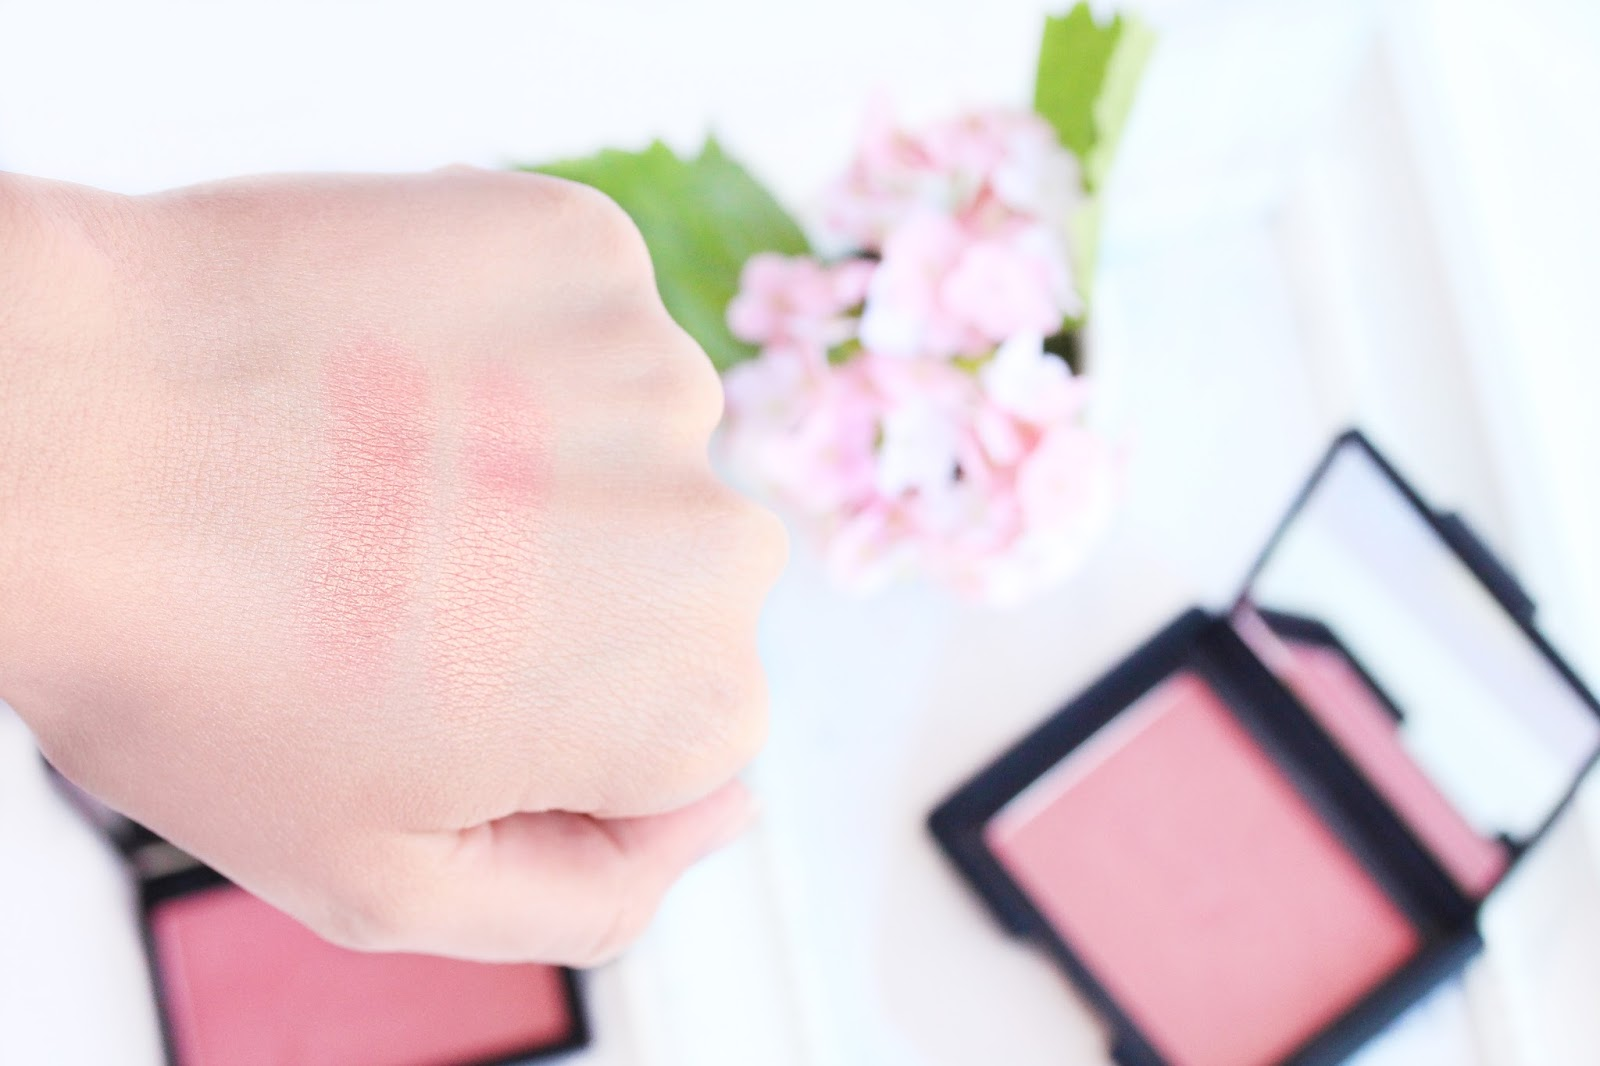 NARS Orgasm blush dupe Sleek Rose Gold Swatches